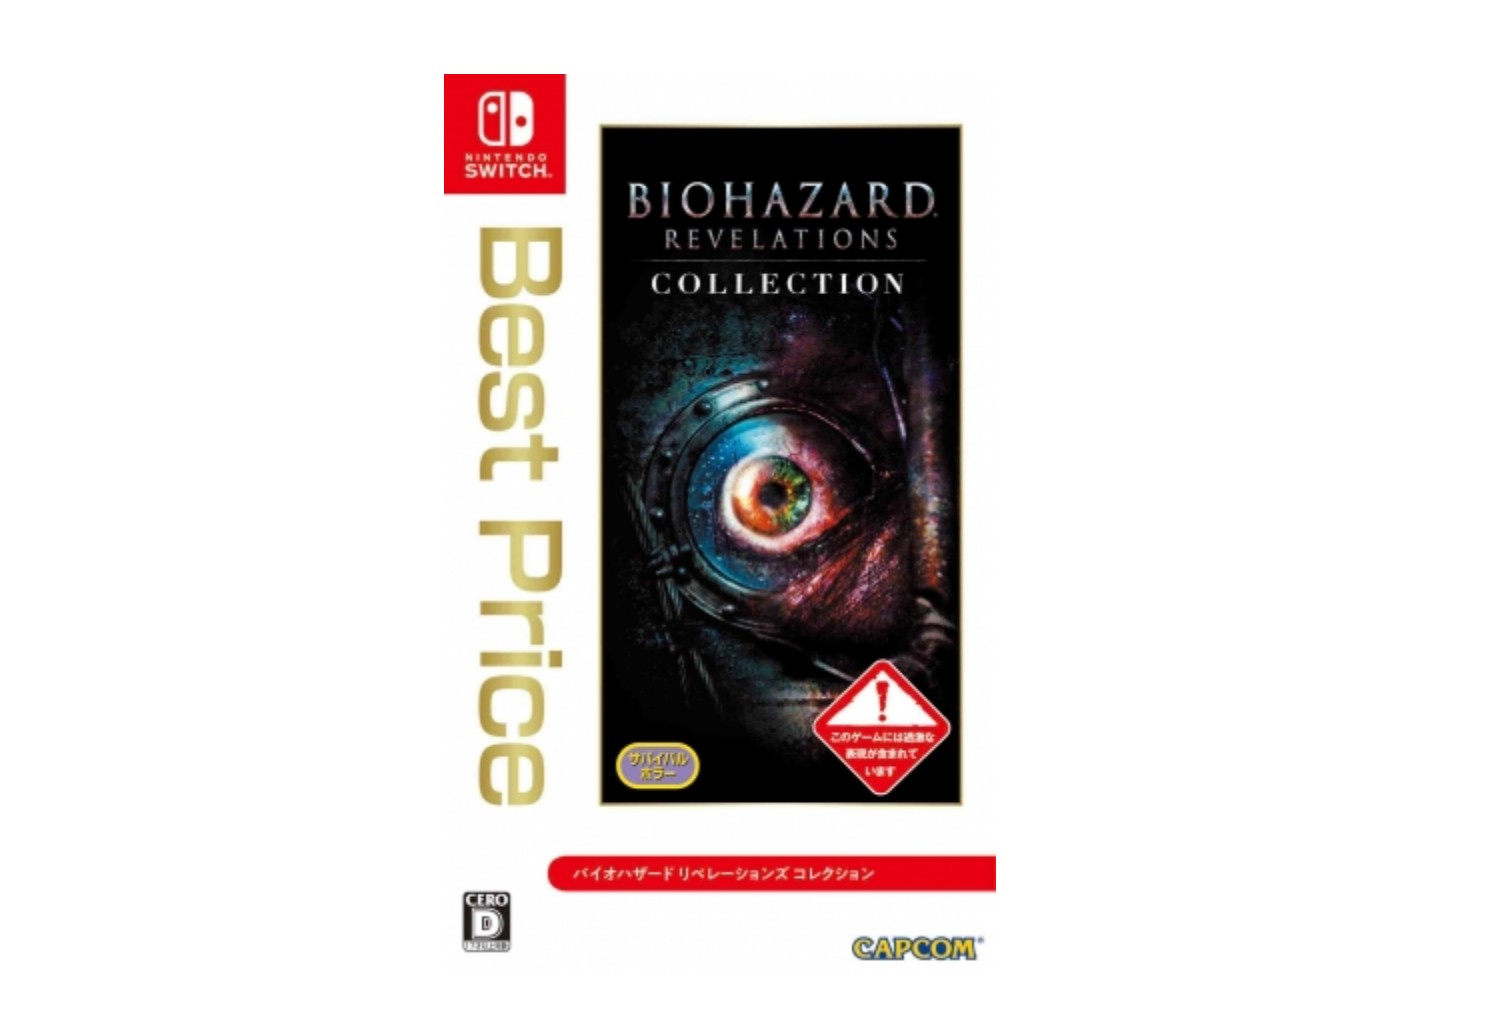 Resident Evil Revelations Collection To Receive Best Price Edition In Japan